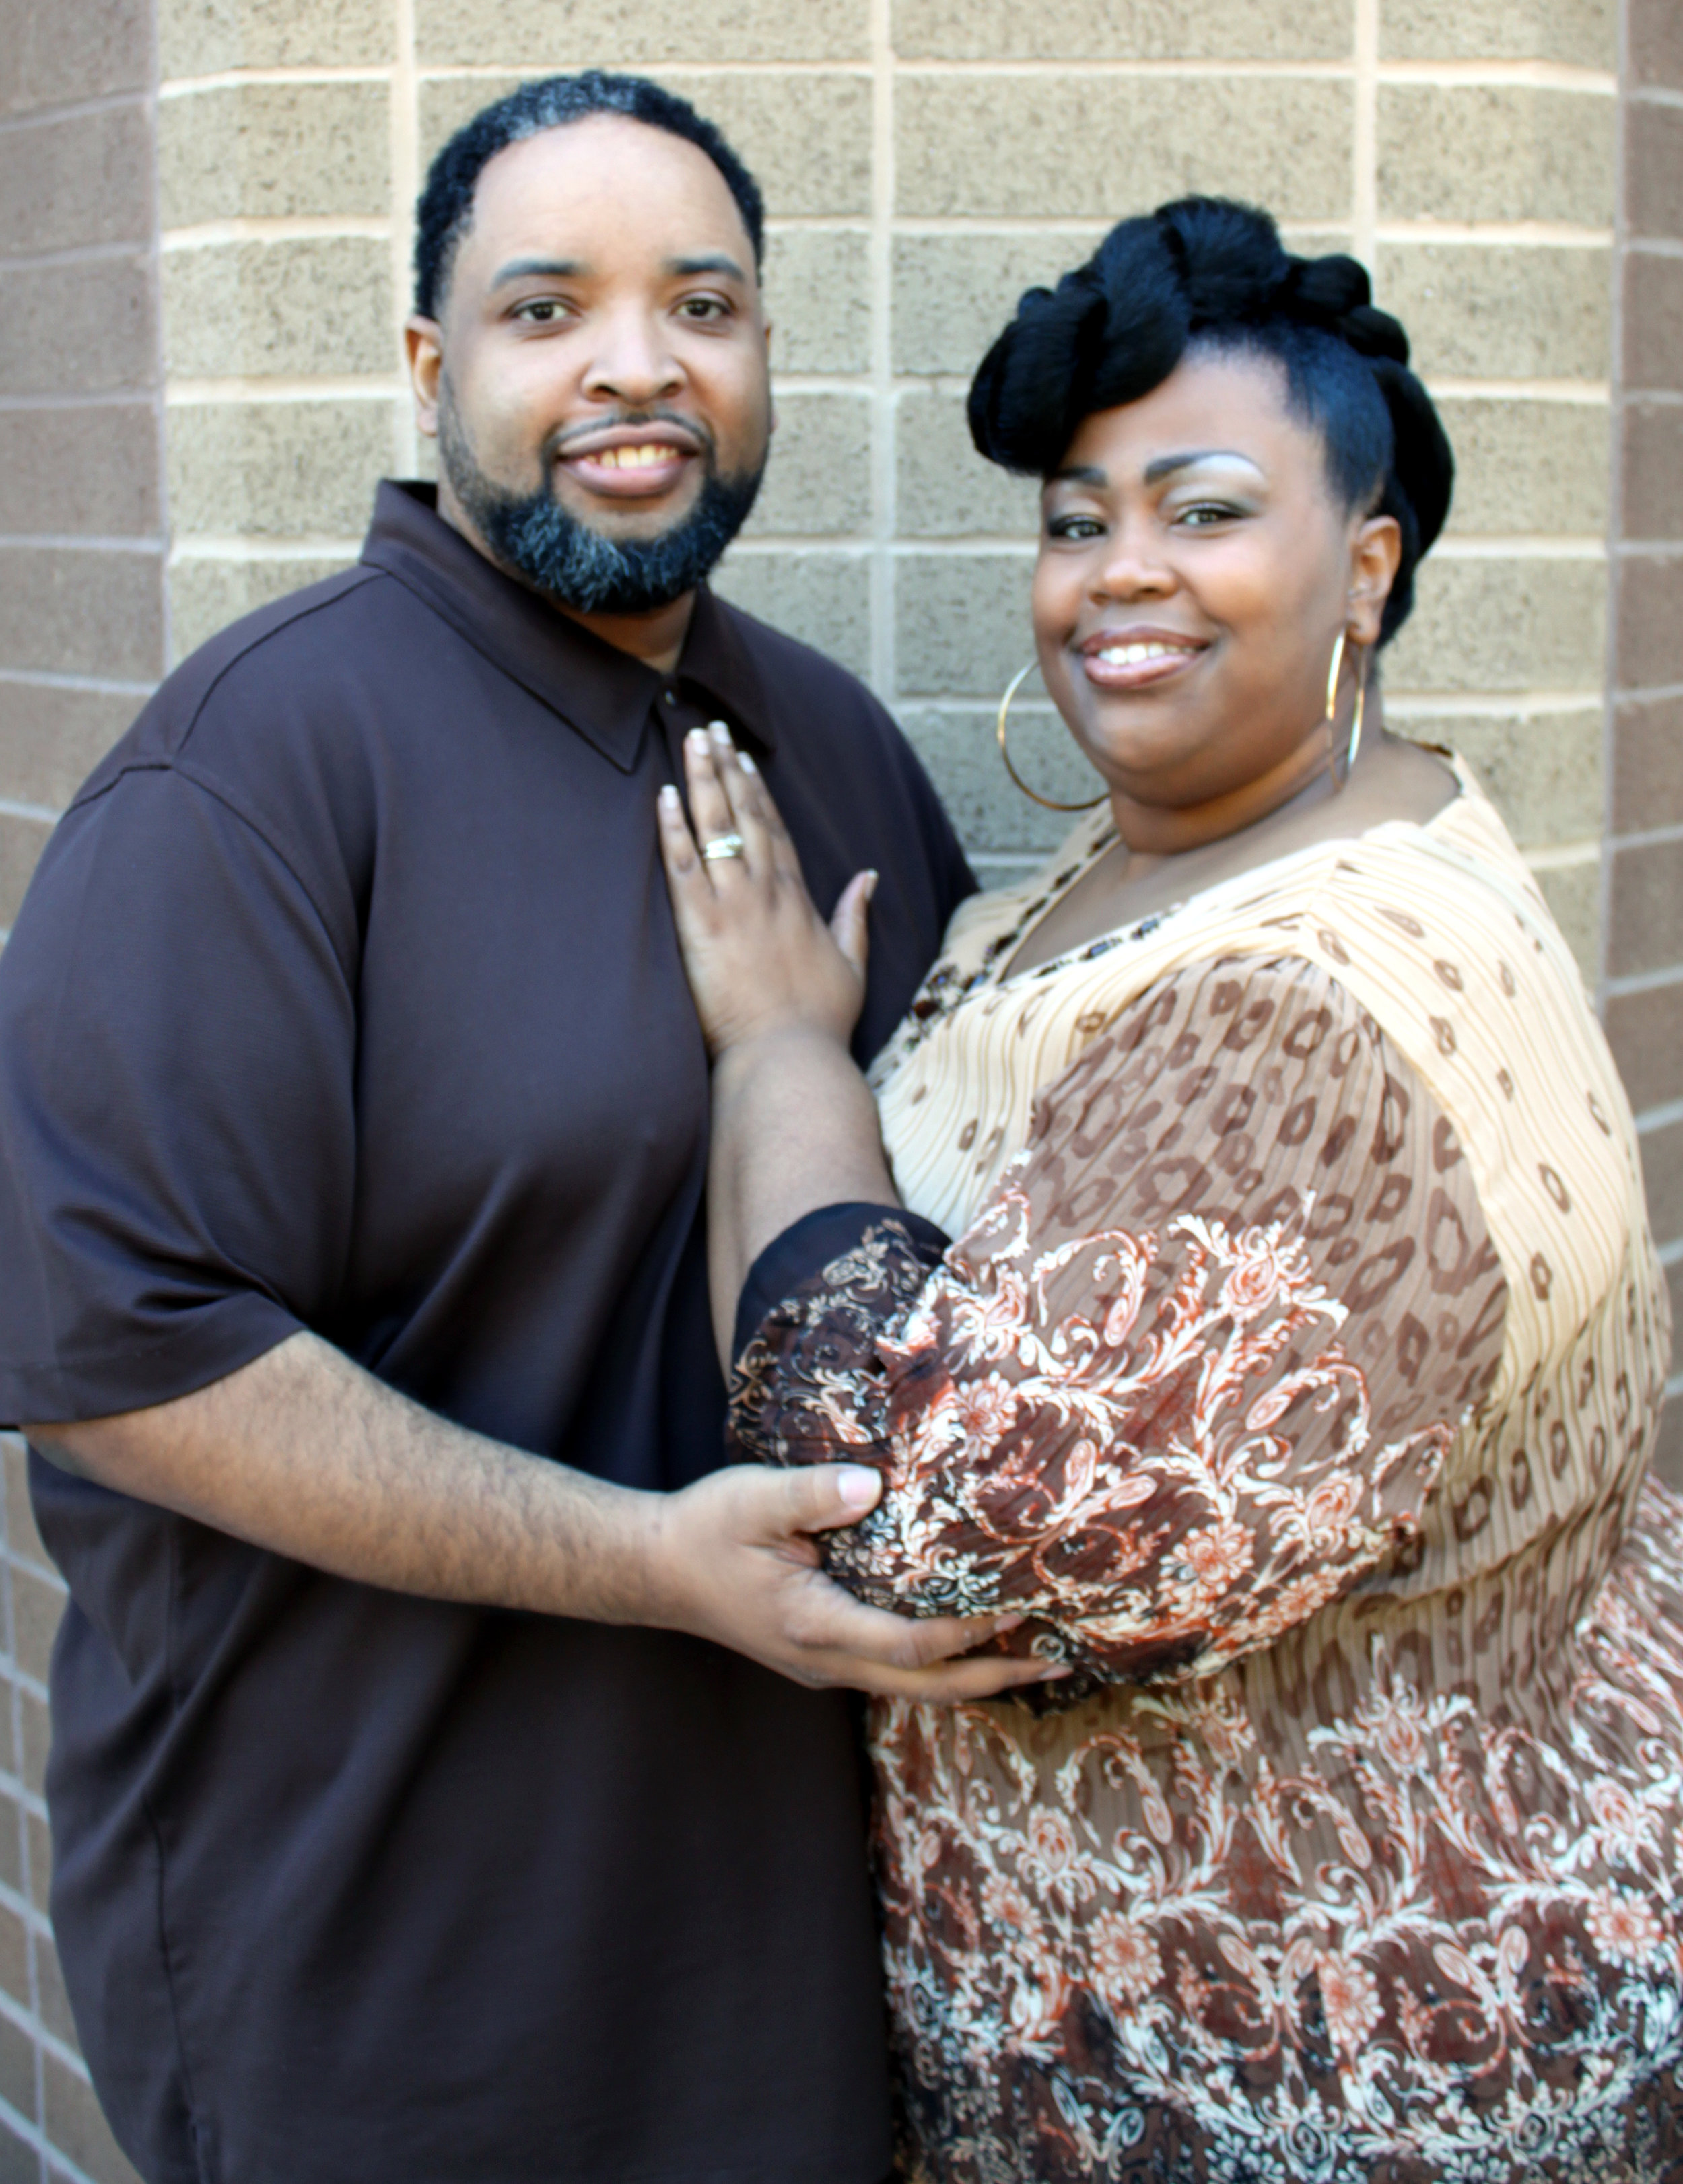 Alfred & Elecia Smith    Pastor Elicia (Lee Lee) is the Worship Pastor of Designer's Way. Originally from Seattle, Wa, she holds a Bachelor's Degree in Music Technology w/a concentration in Vocal Performance from Bethune-Cookman University, and a Master of Science in Leadership w/a concentration in Leader Development from Walden University. Alfred is one of our Elders and serves in our Audio Visual Ministry. Originally from Washington D.C. he holds a Bachelor's Degree in Recording Arts from The International Academy of Design and Technology.